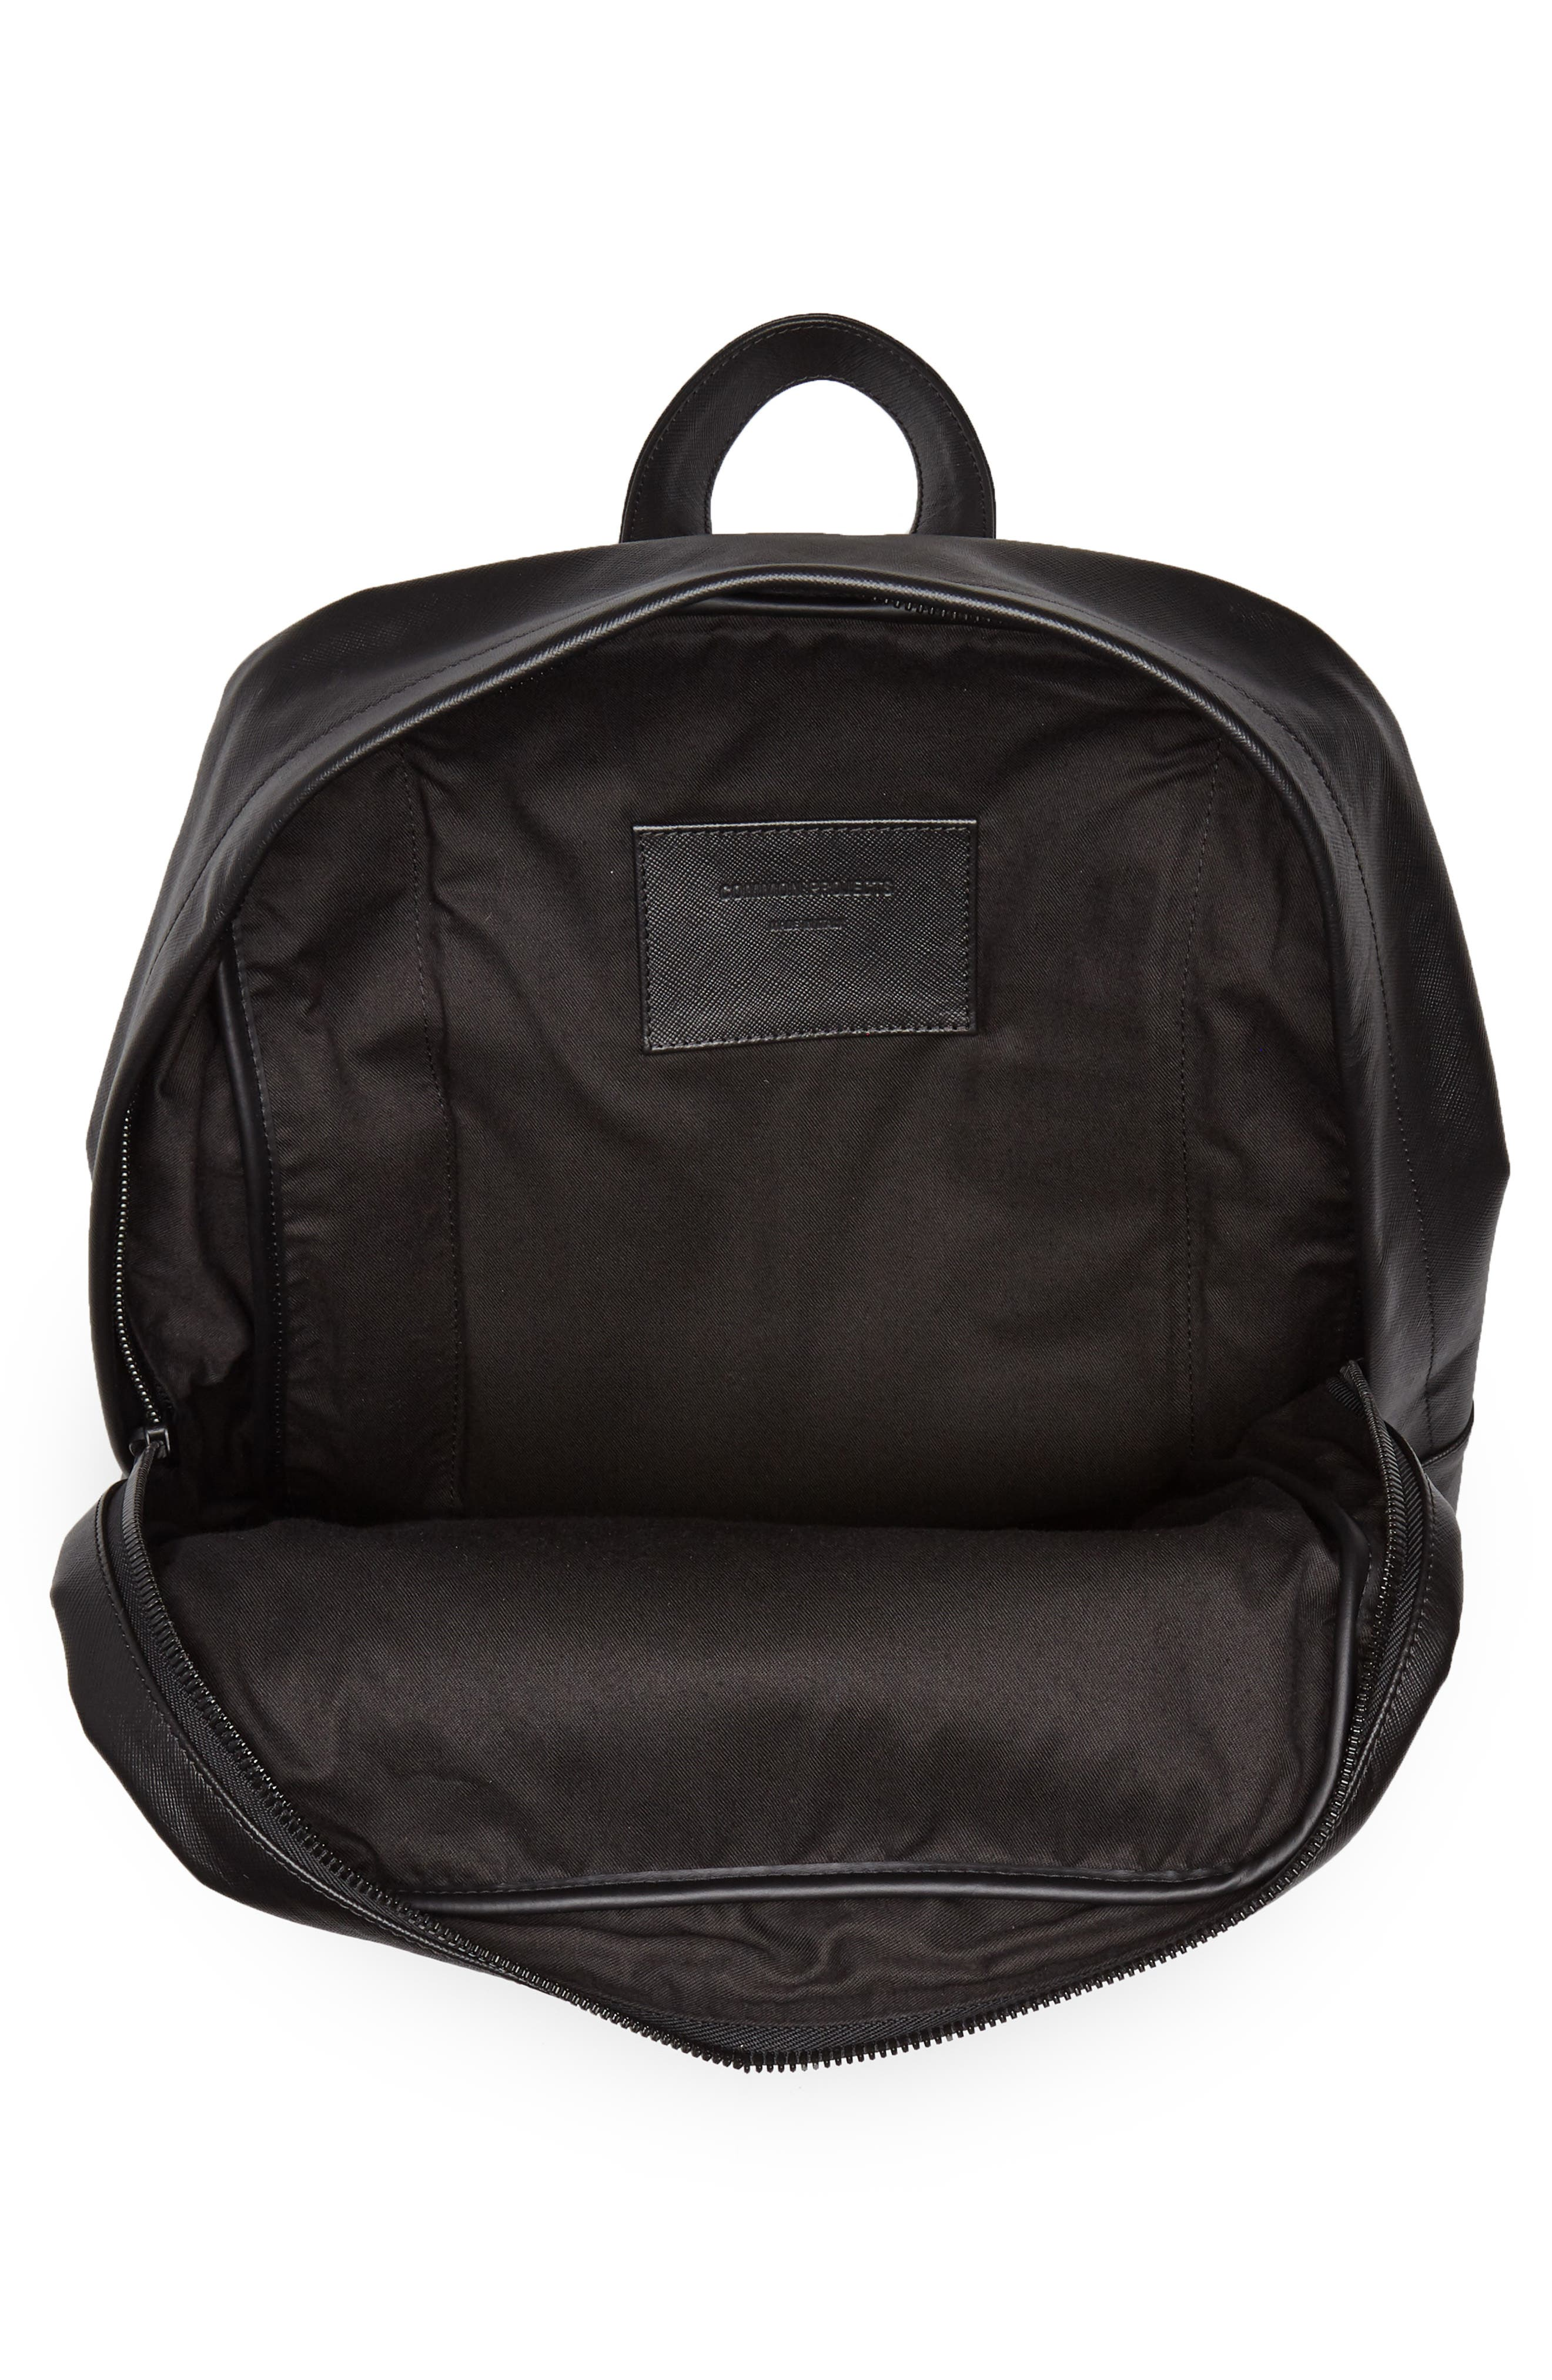 Saffiano Leather Backpack,                             Alternate thumbnail 4, color,                             Black